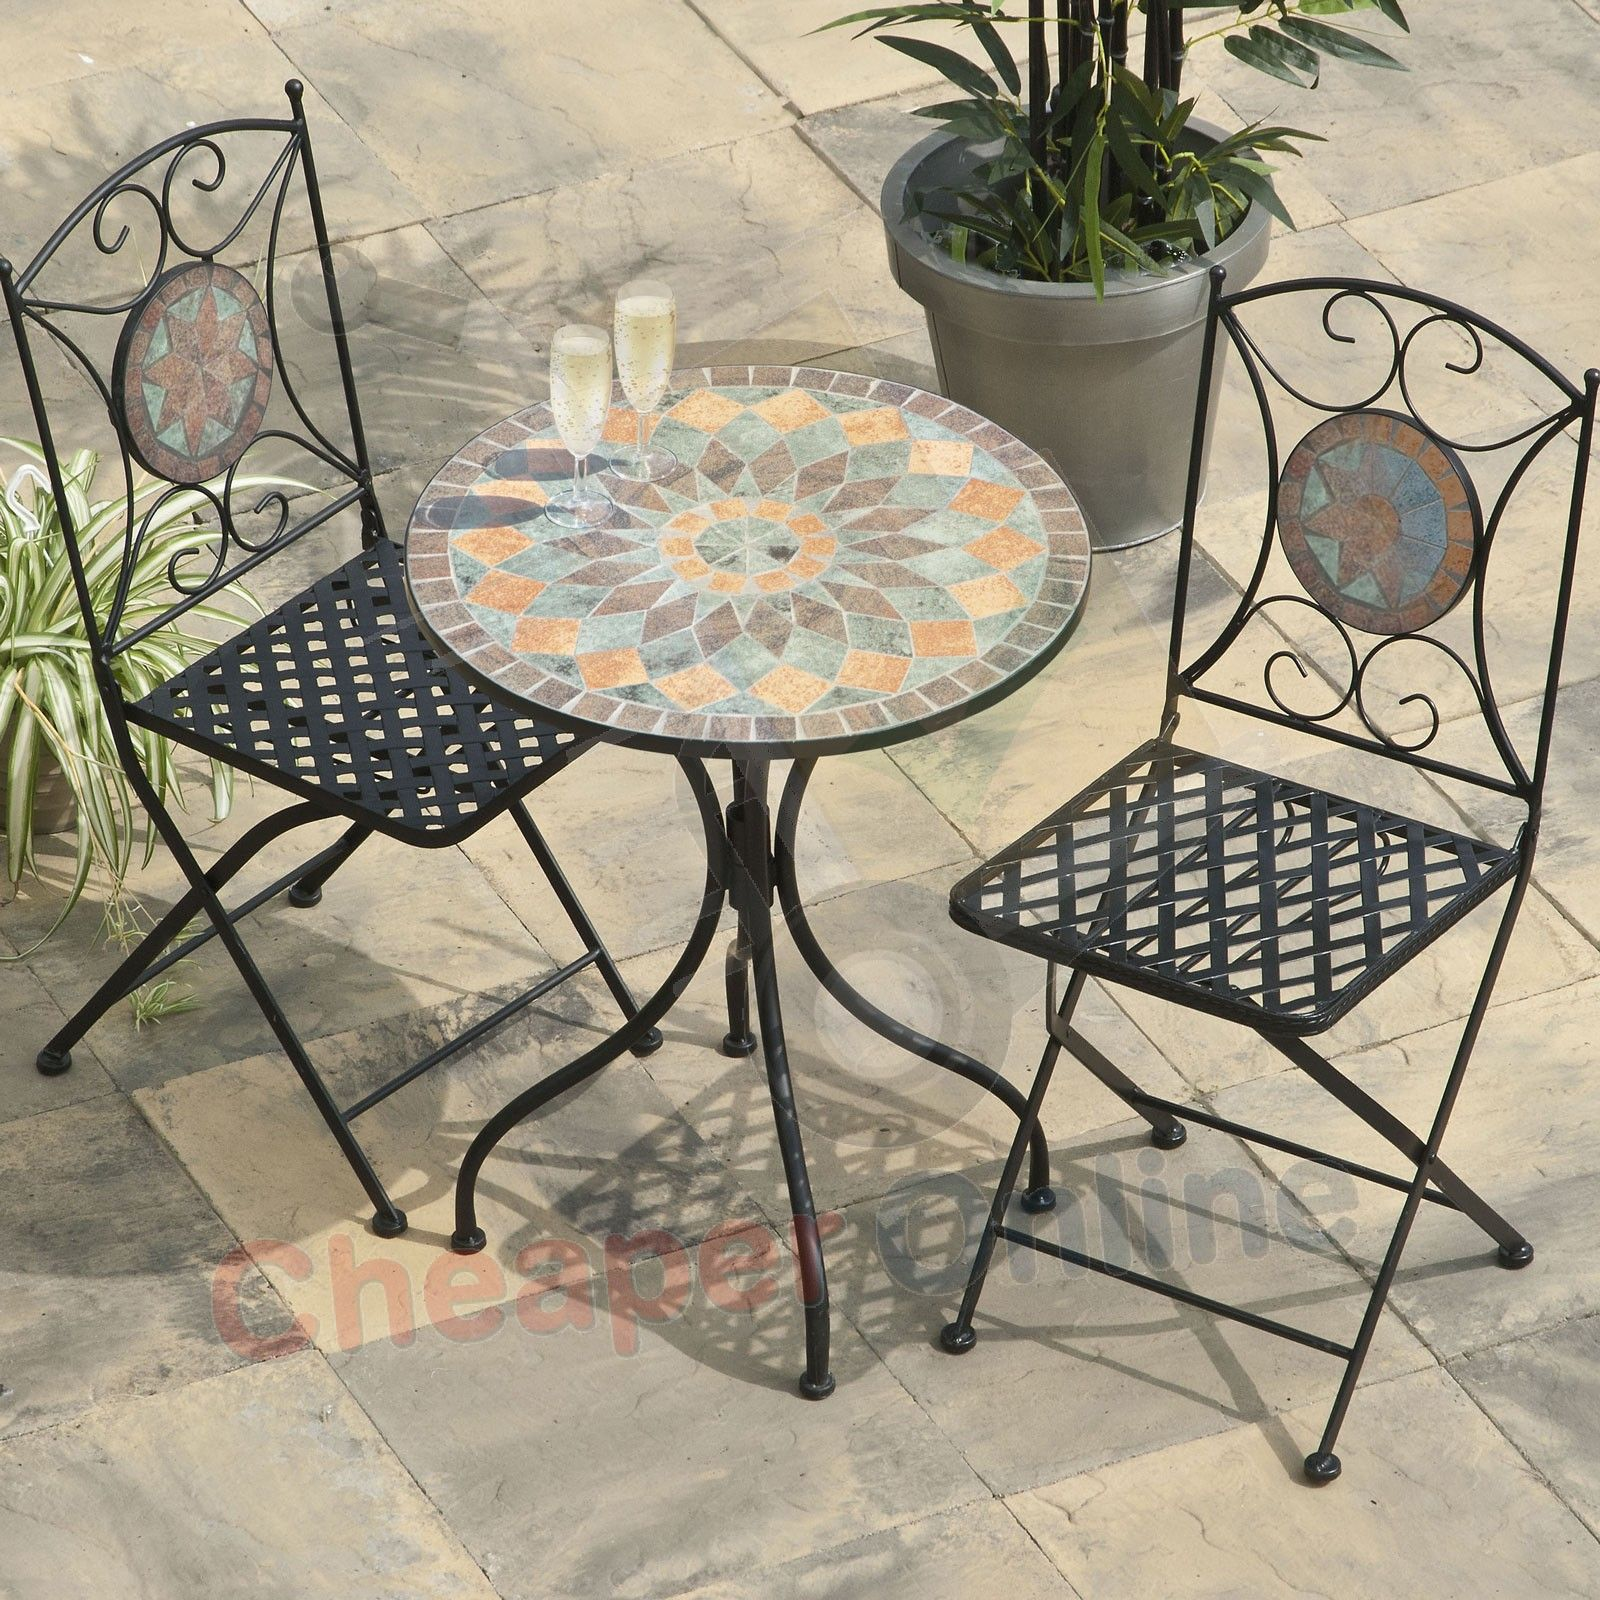 metal patio furniture mosaic Google Search Garden